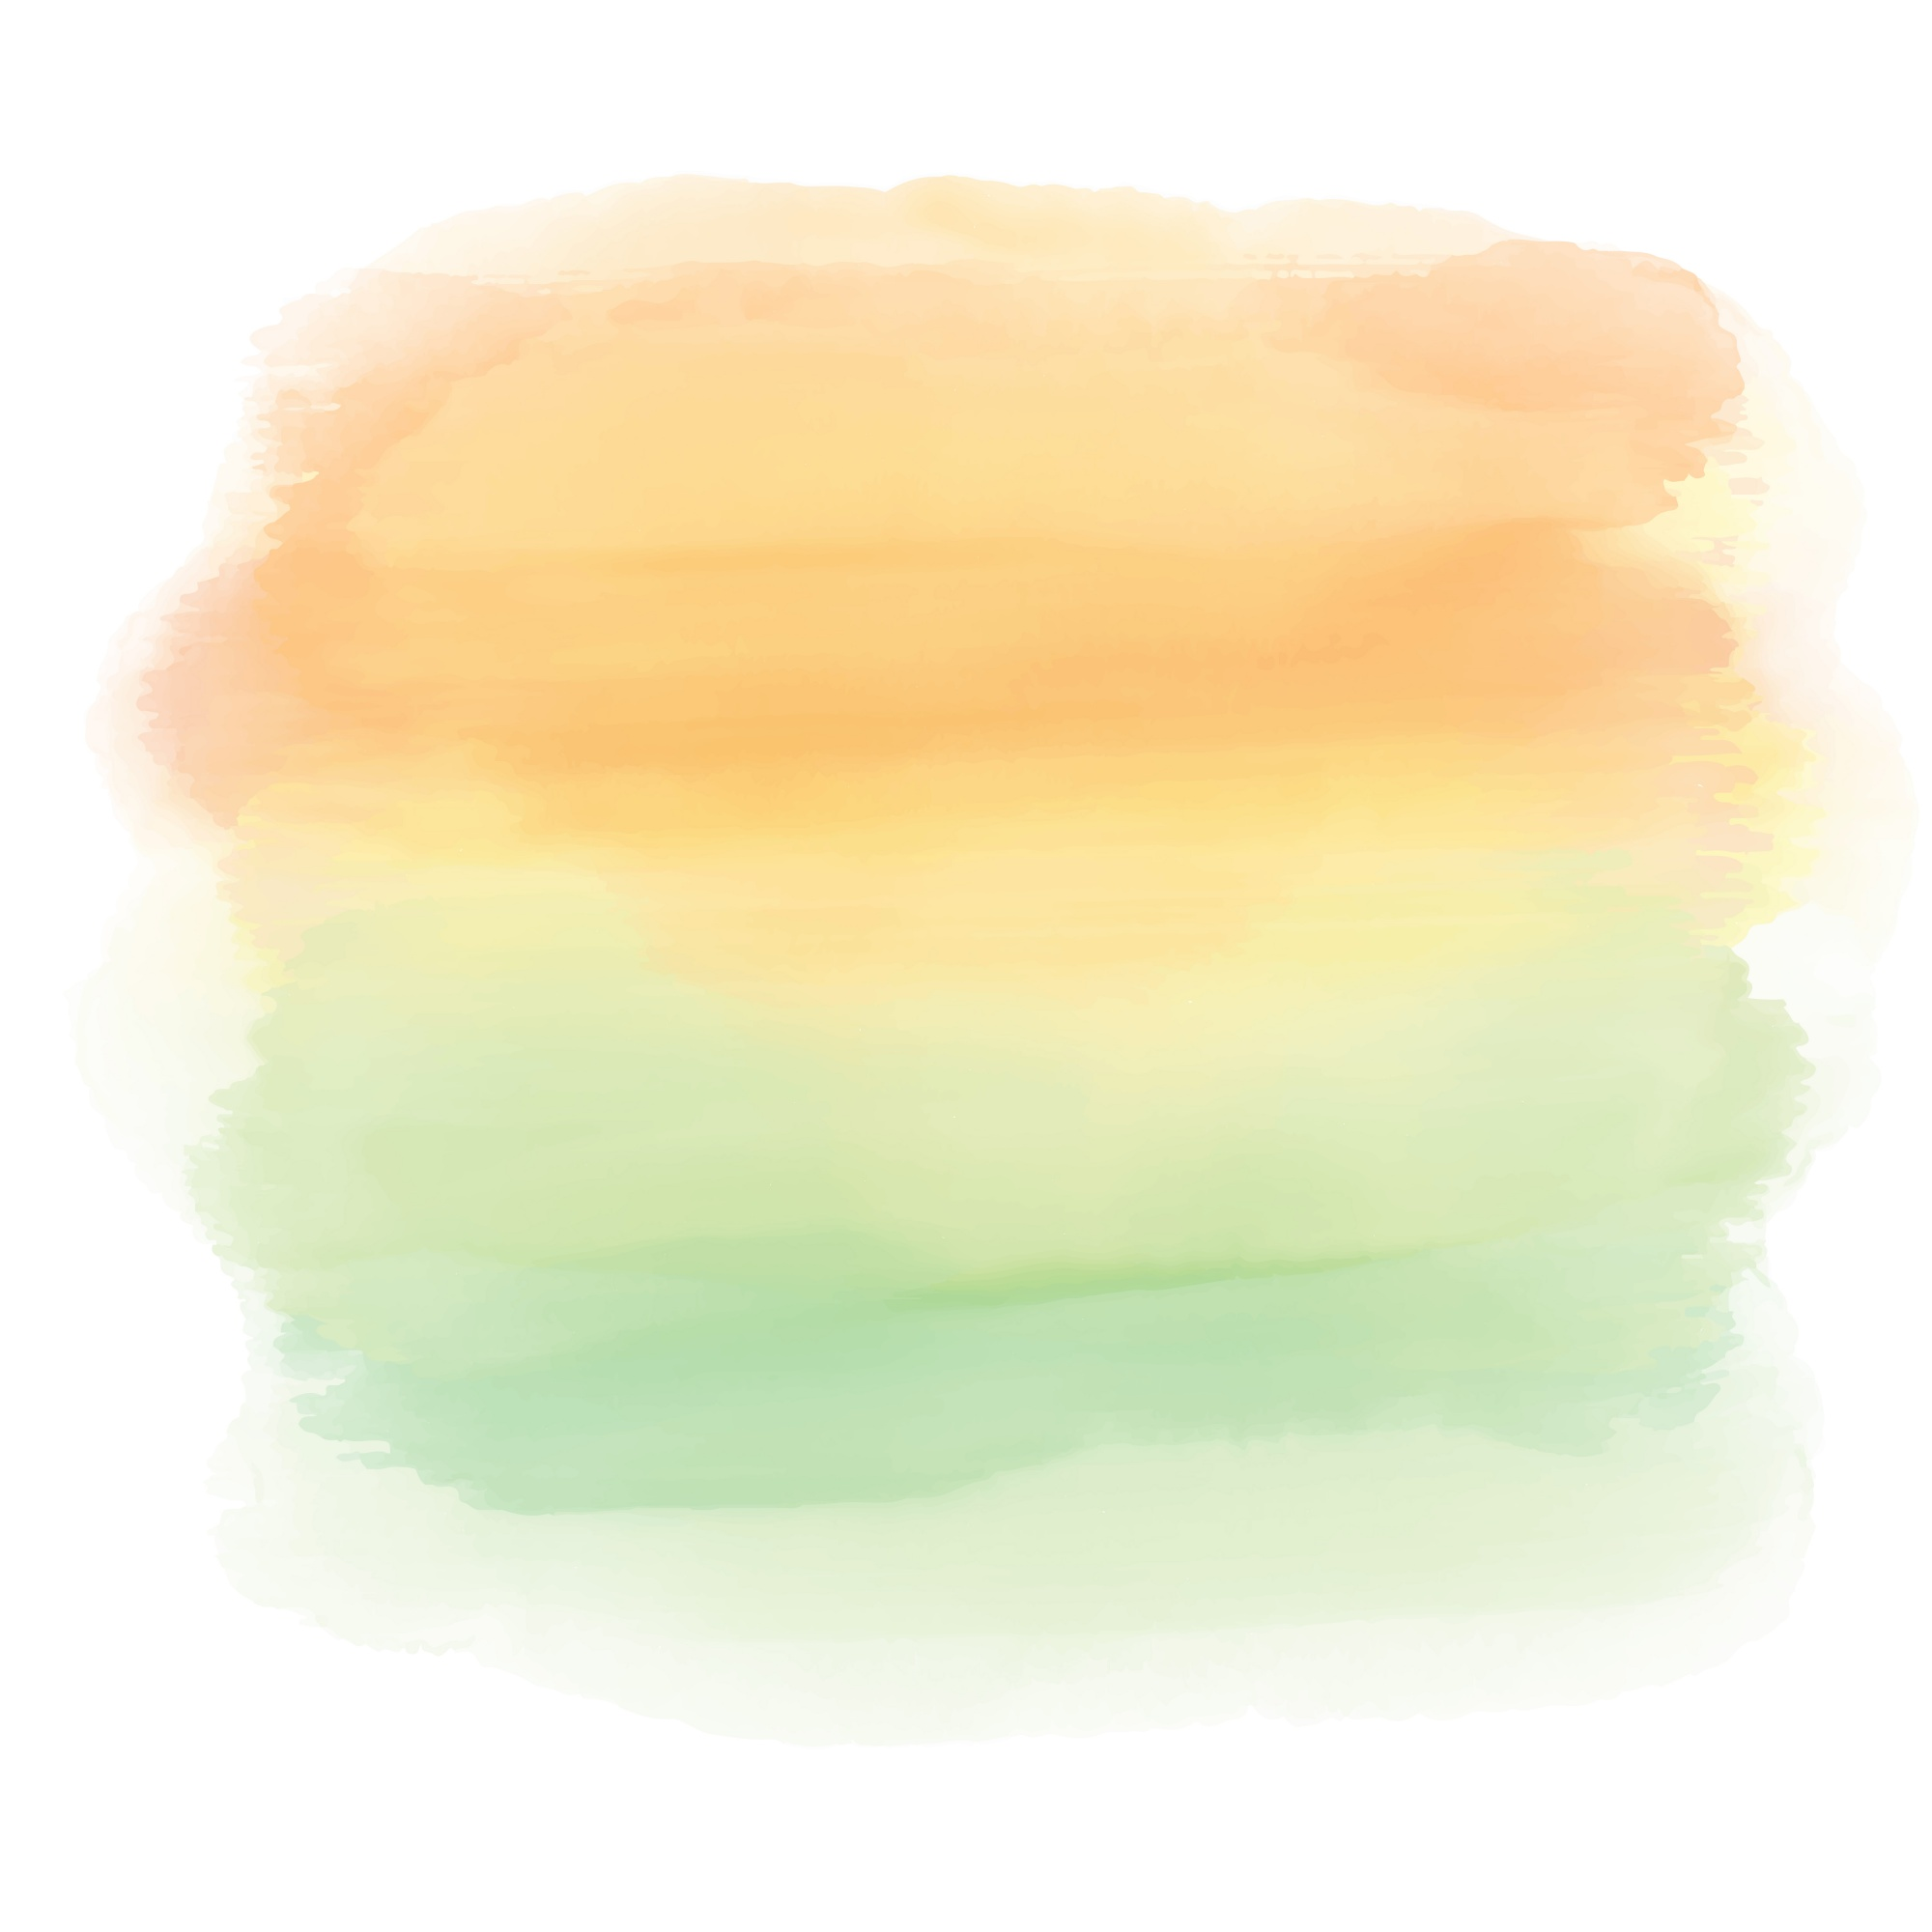 Abstract watercolor background of a sunset landscape